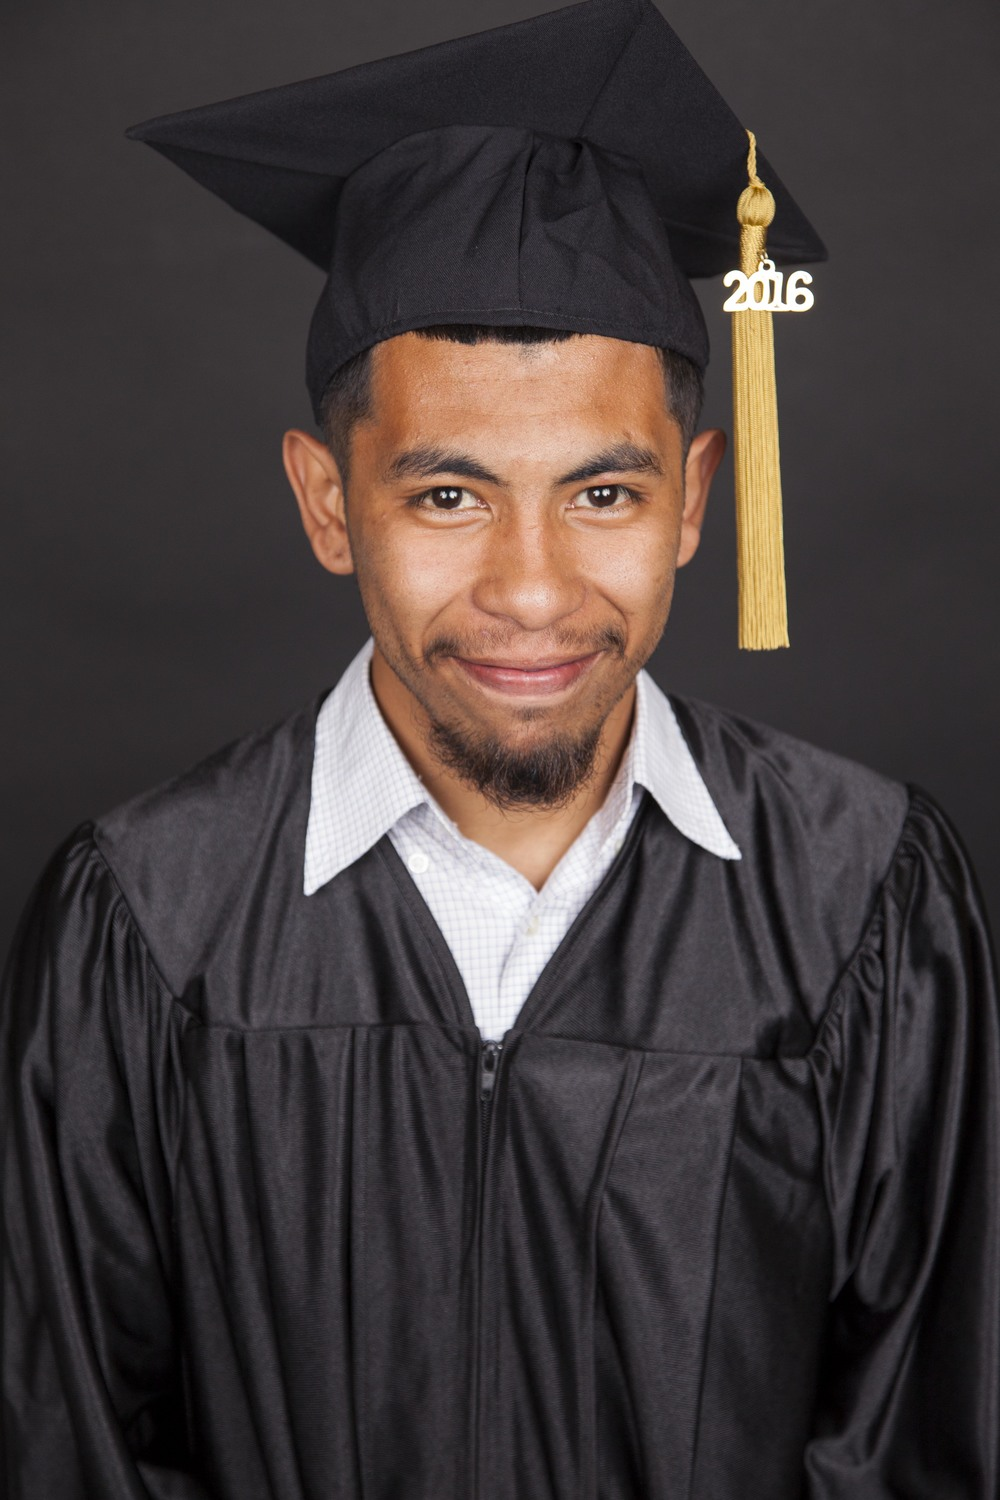 19_2016_Cap&Gown_(photo_credit_Christina_Simons).jpg